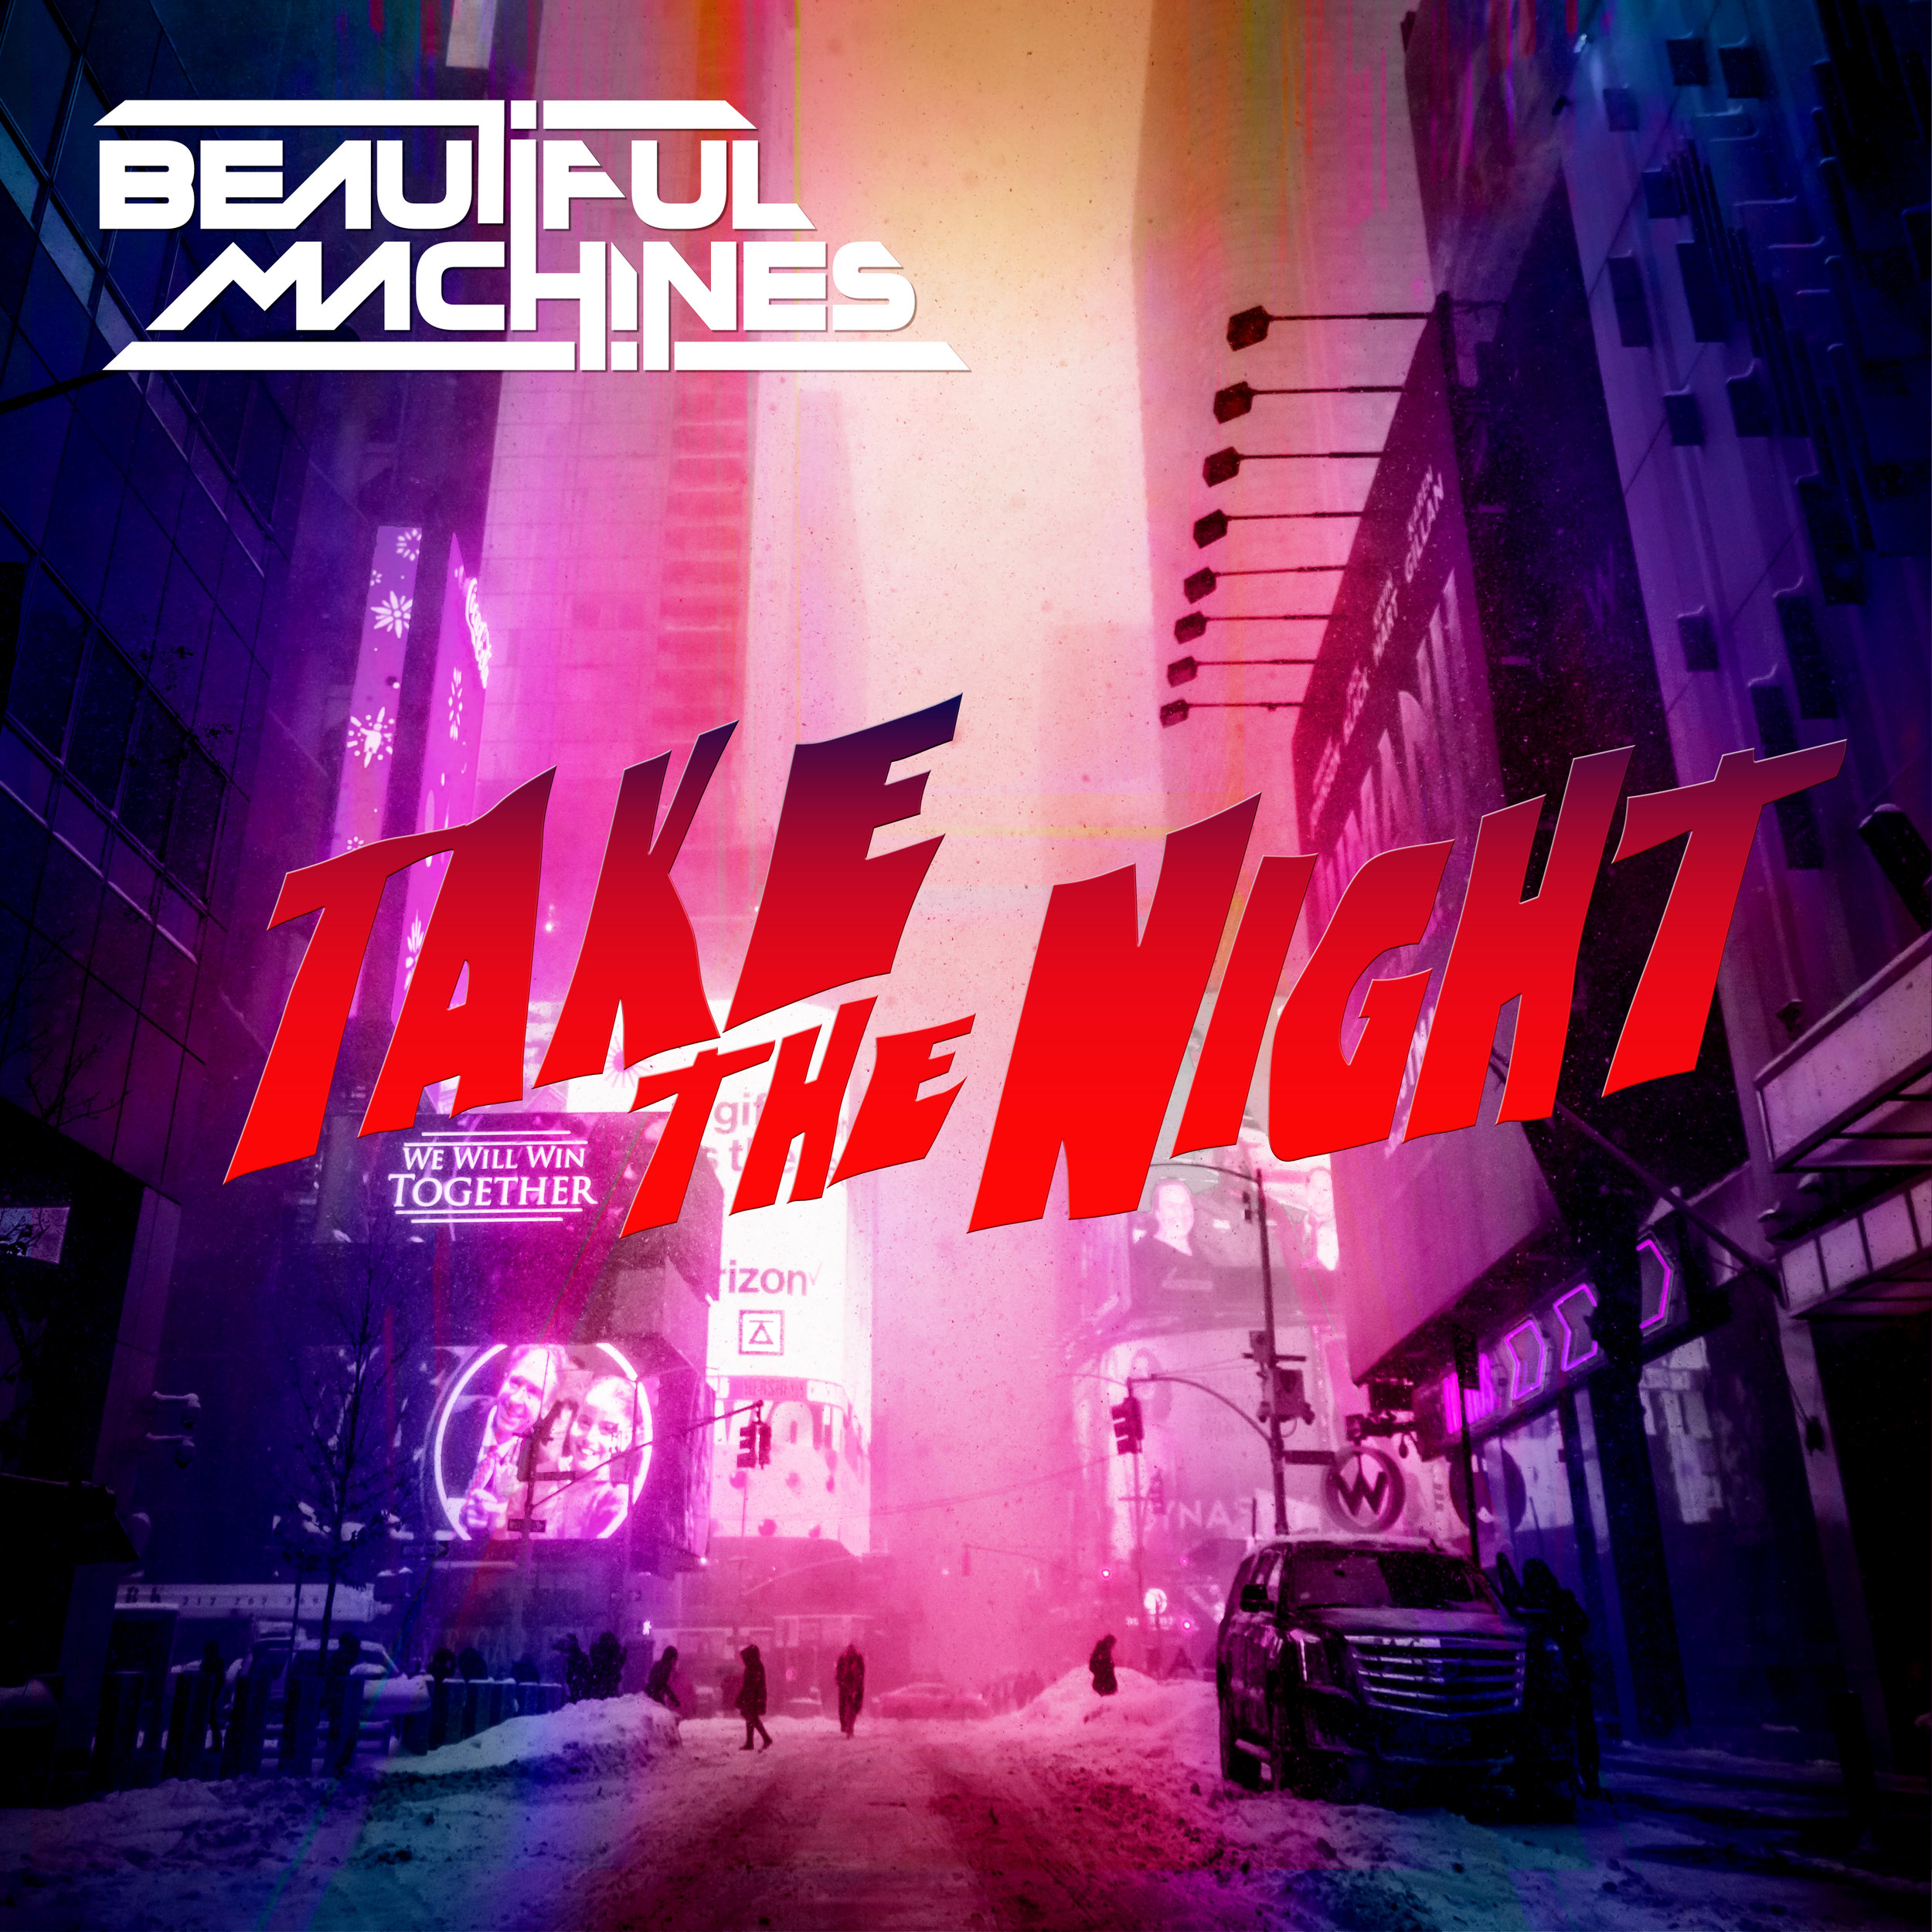 Beautiful Machines - Take the Night Cover Art - 3000x3000.jpg